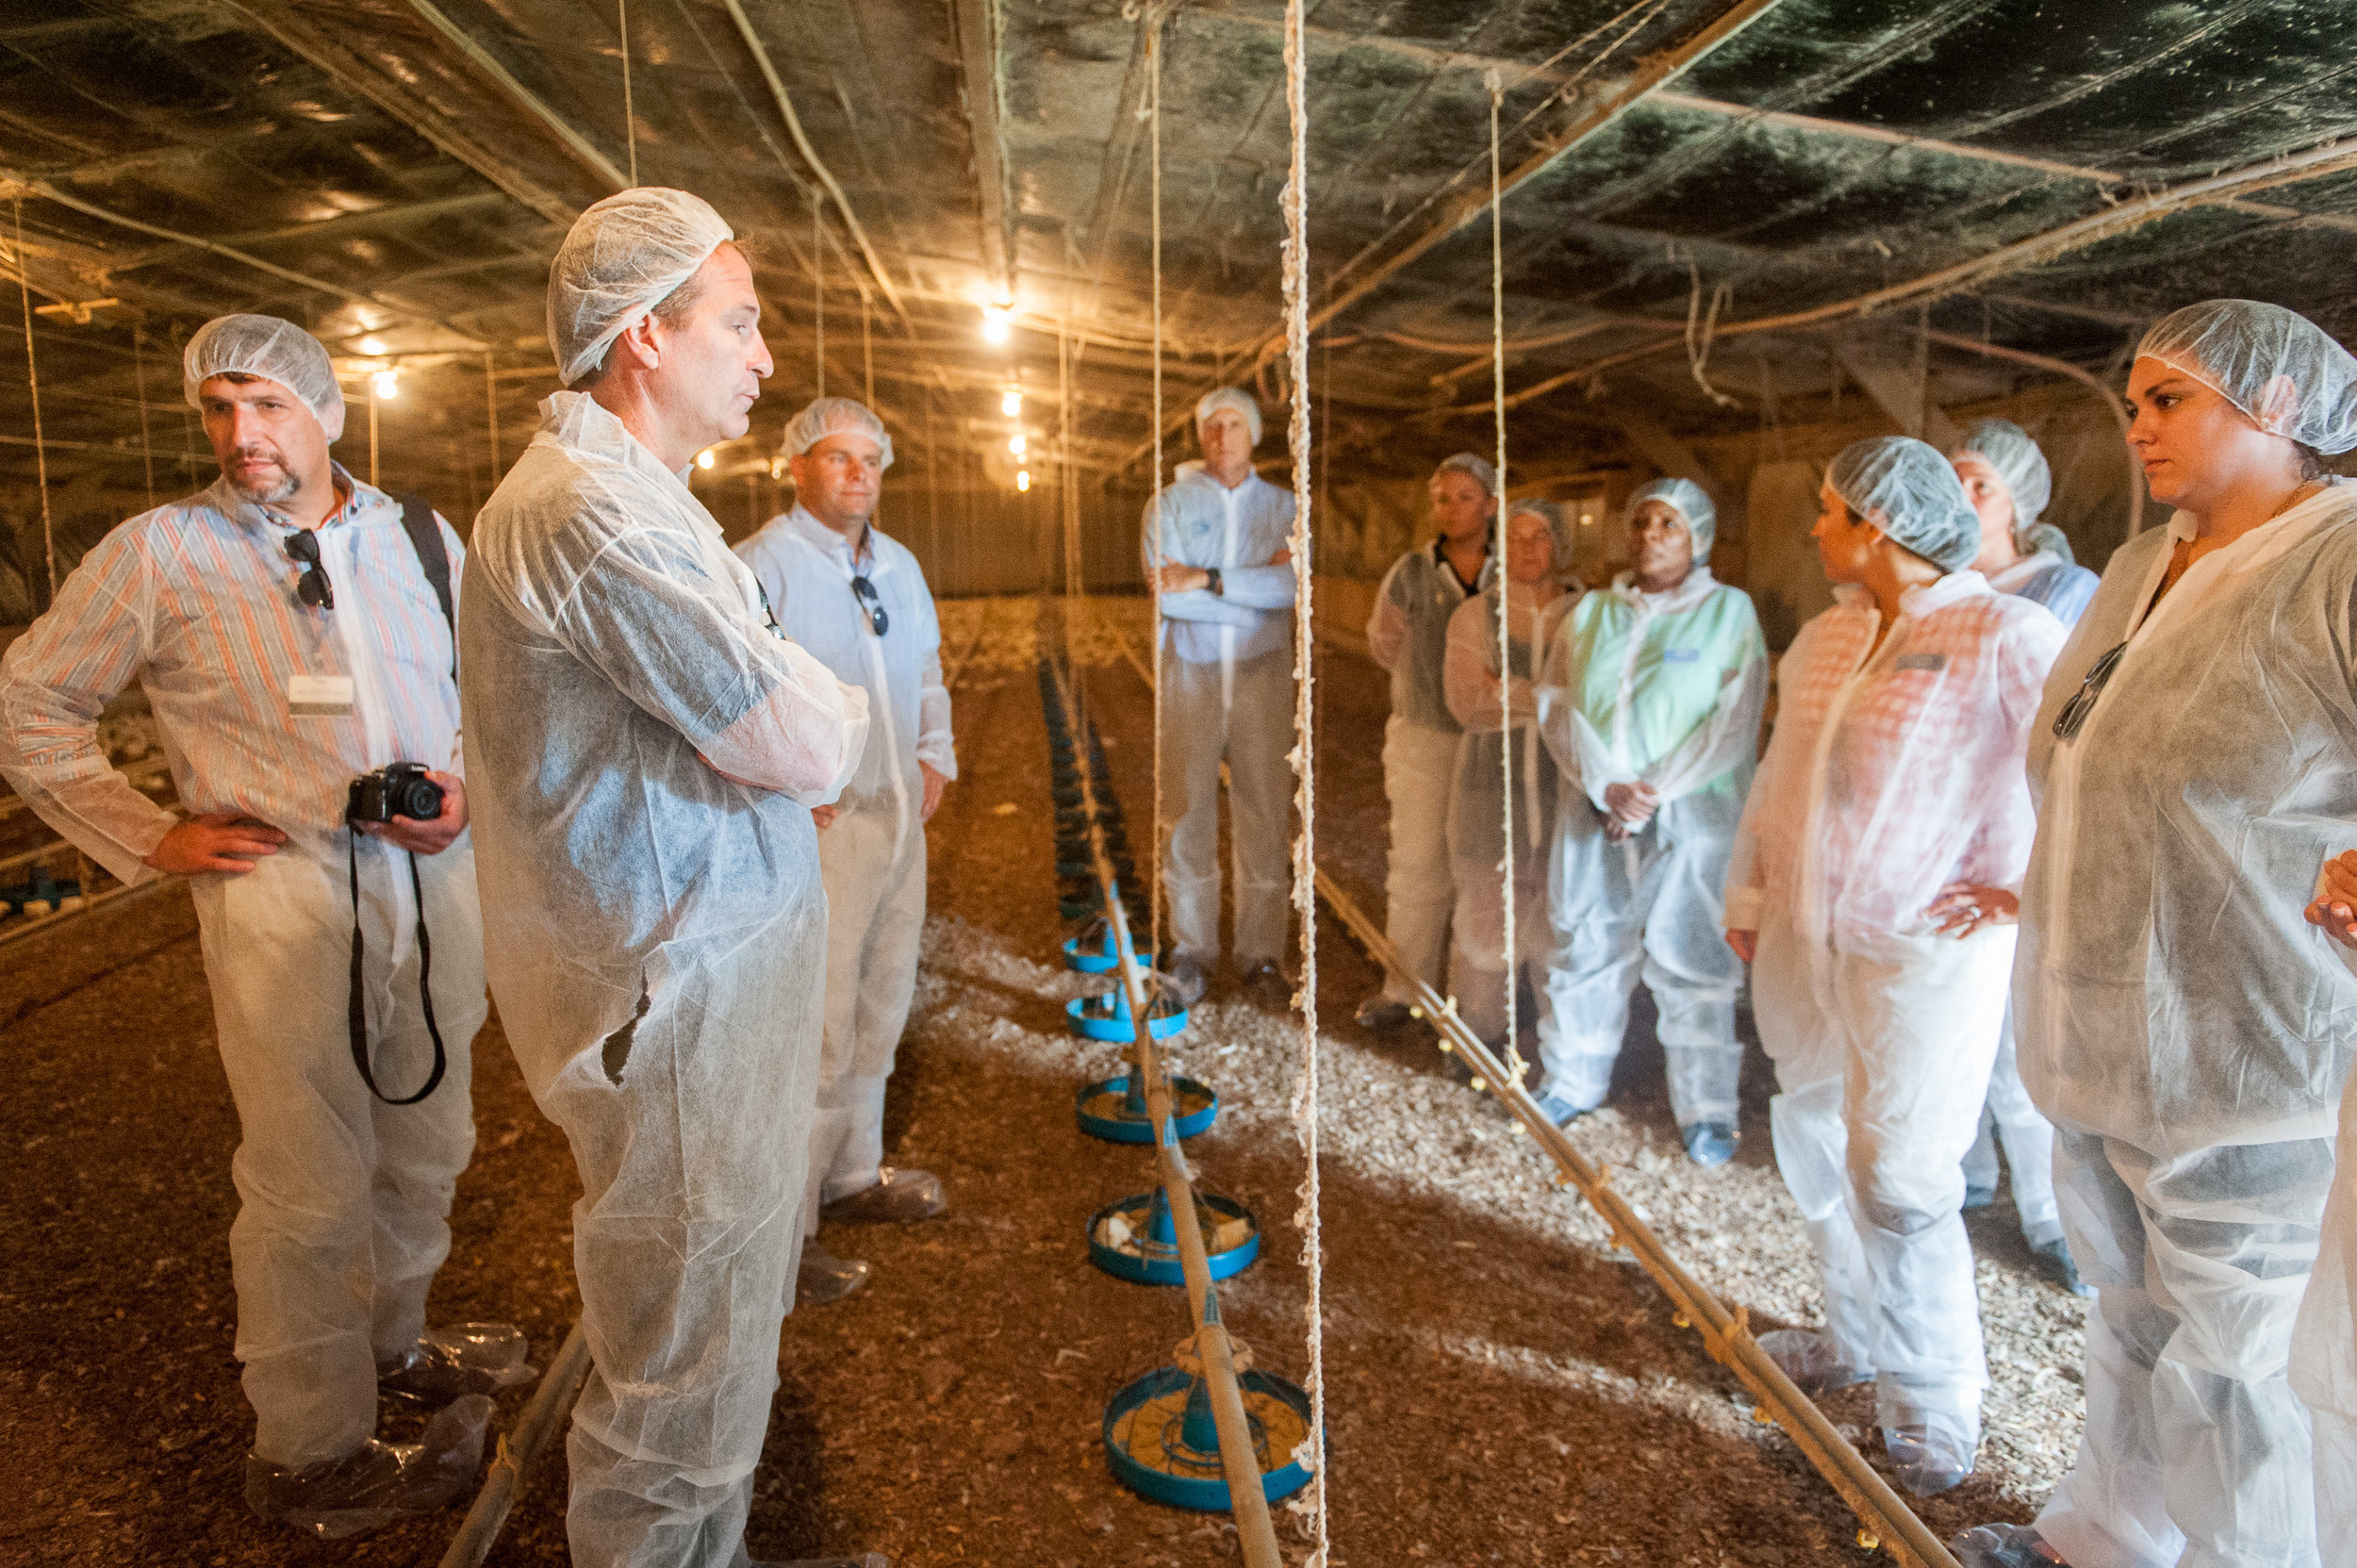 Inside poultry house in Maryland. Image by Edwin Remsberg.